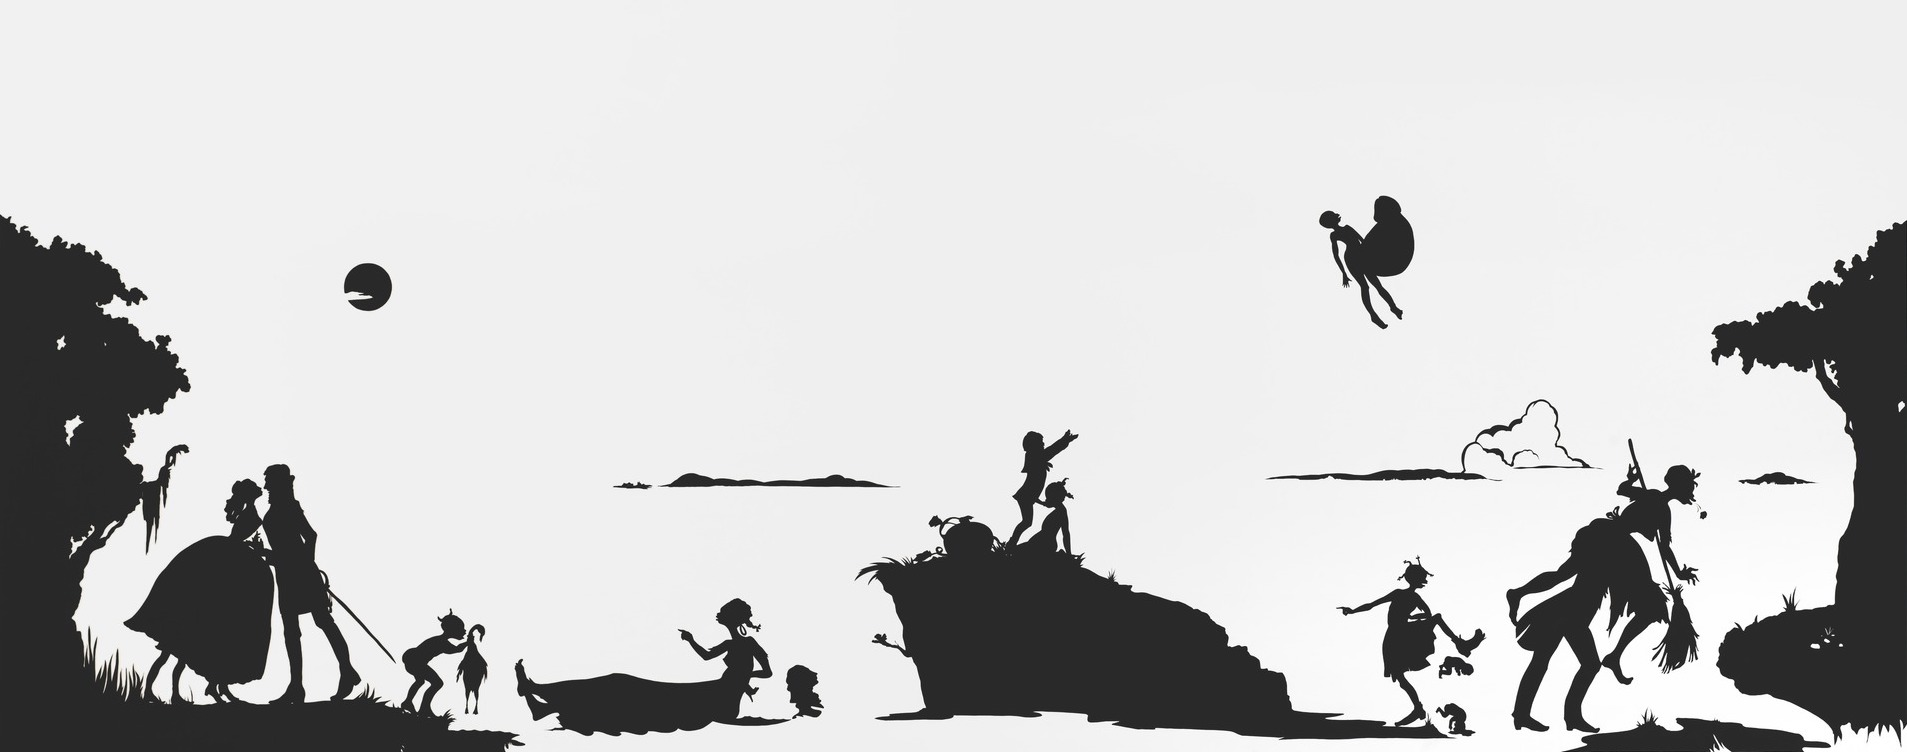 """Kara Walker exploded onto the art scene in 1994 at the age of 24 with work that shocked many, and at the same time, made her one of the leading artistic voices on the subject of race and racism.""   https://westburyarts.org/celebrating-black-history-kara-walker/"